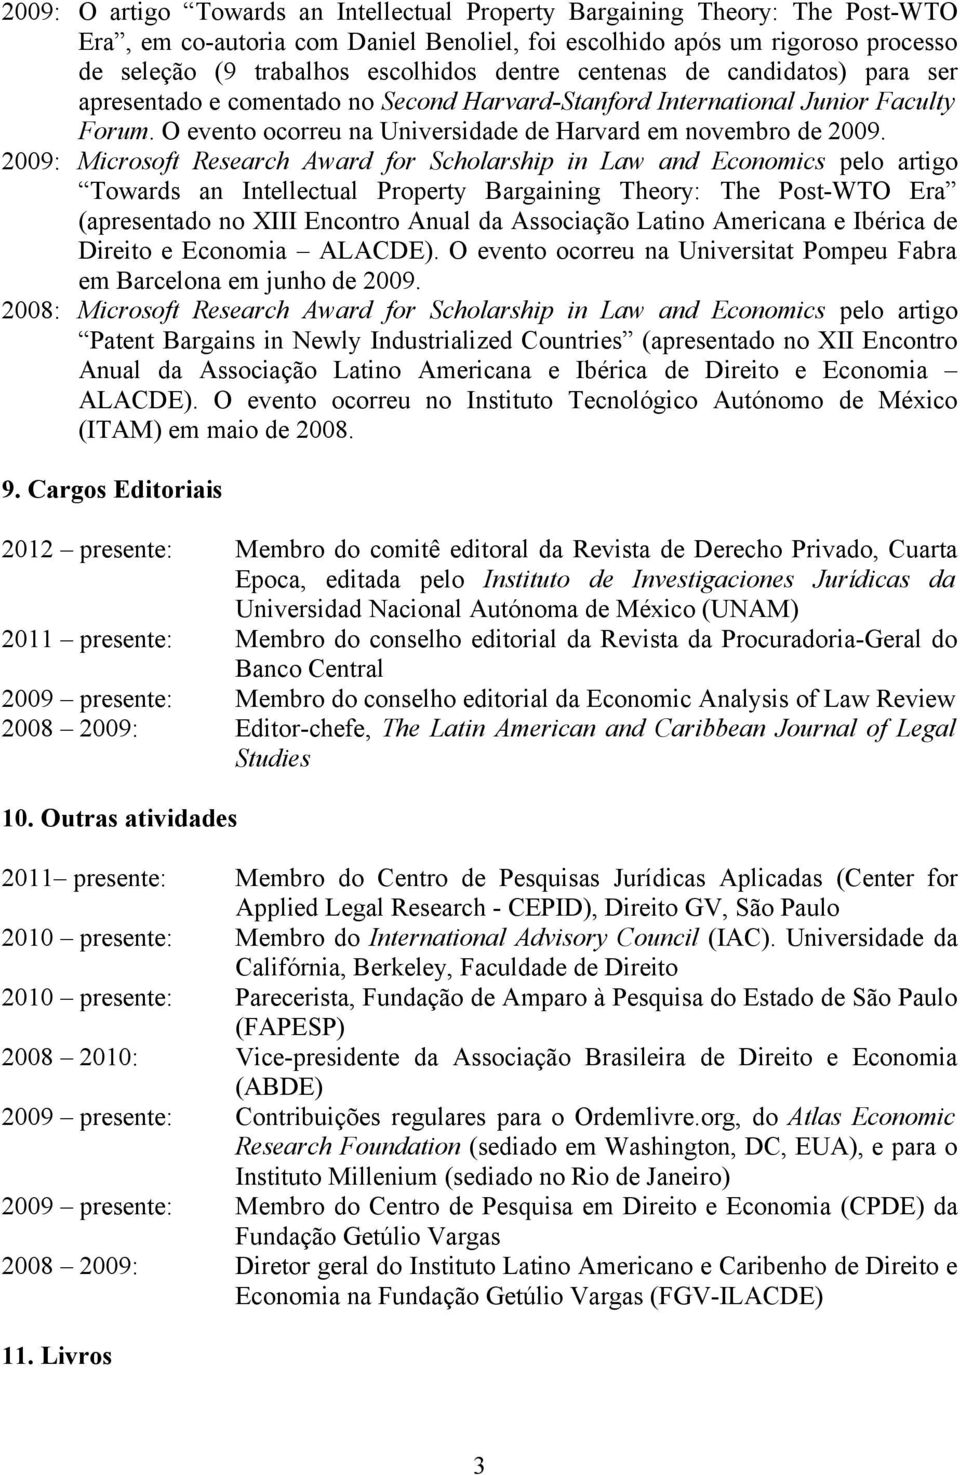 2009: Microsoft Research Award for Scholarship in Law and Economics pelo artigo Towards an Intellectual Property Bargaining Theory: The Post-WTO Era (apresentado no XIII Encontro Anual da Associação